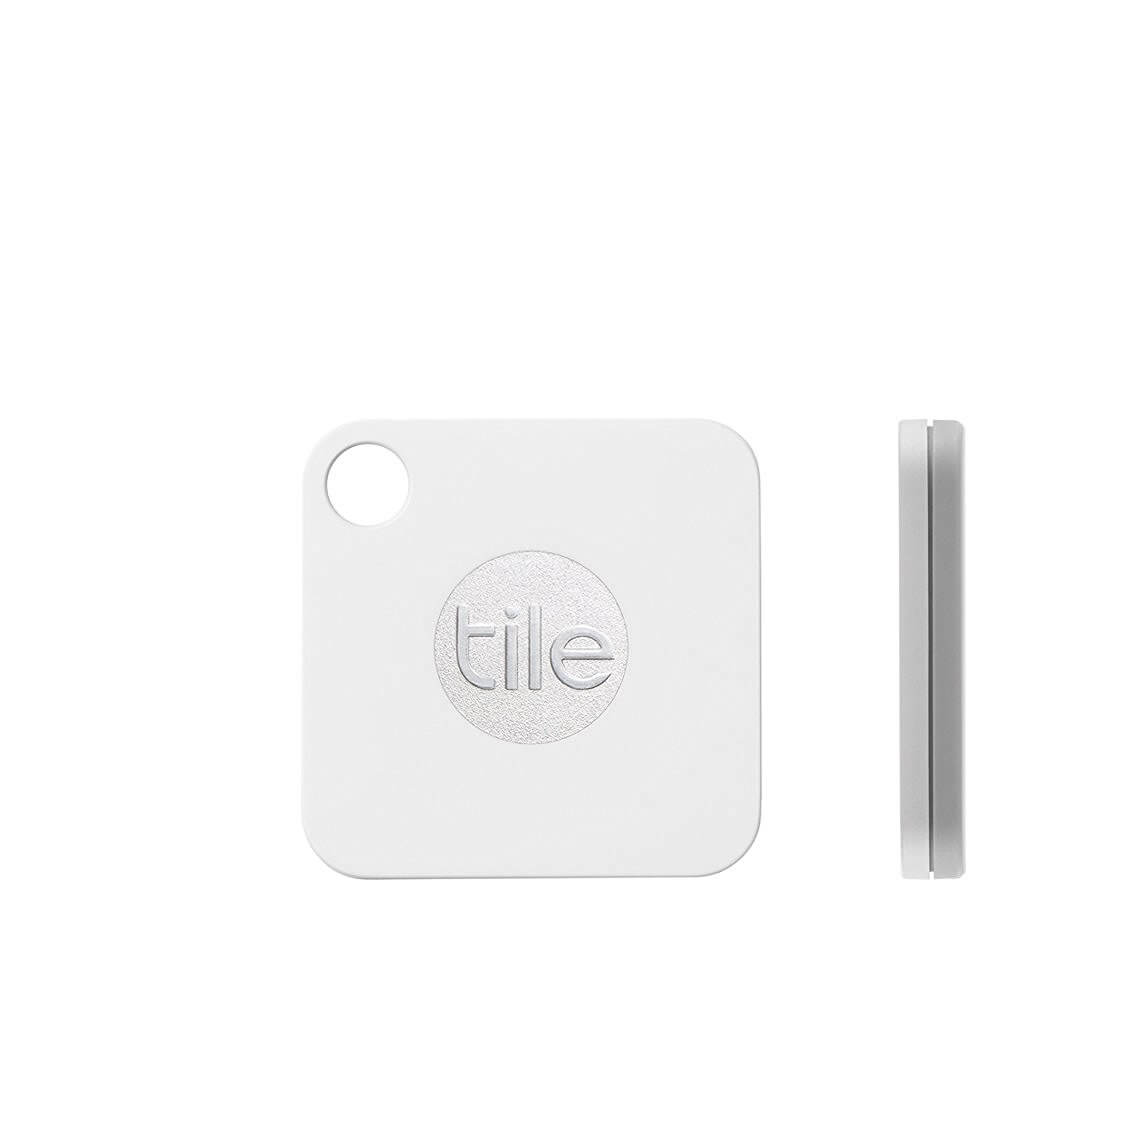 Image of Tile Mate